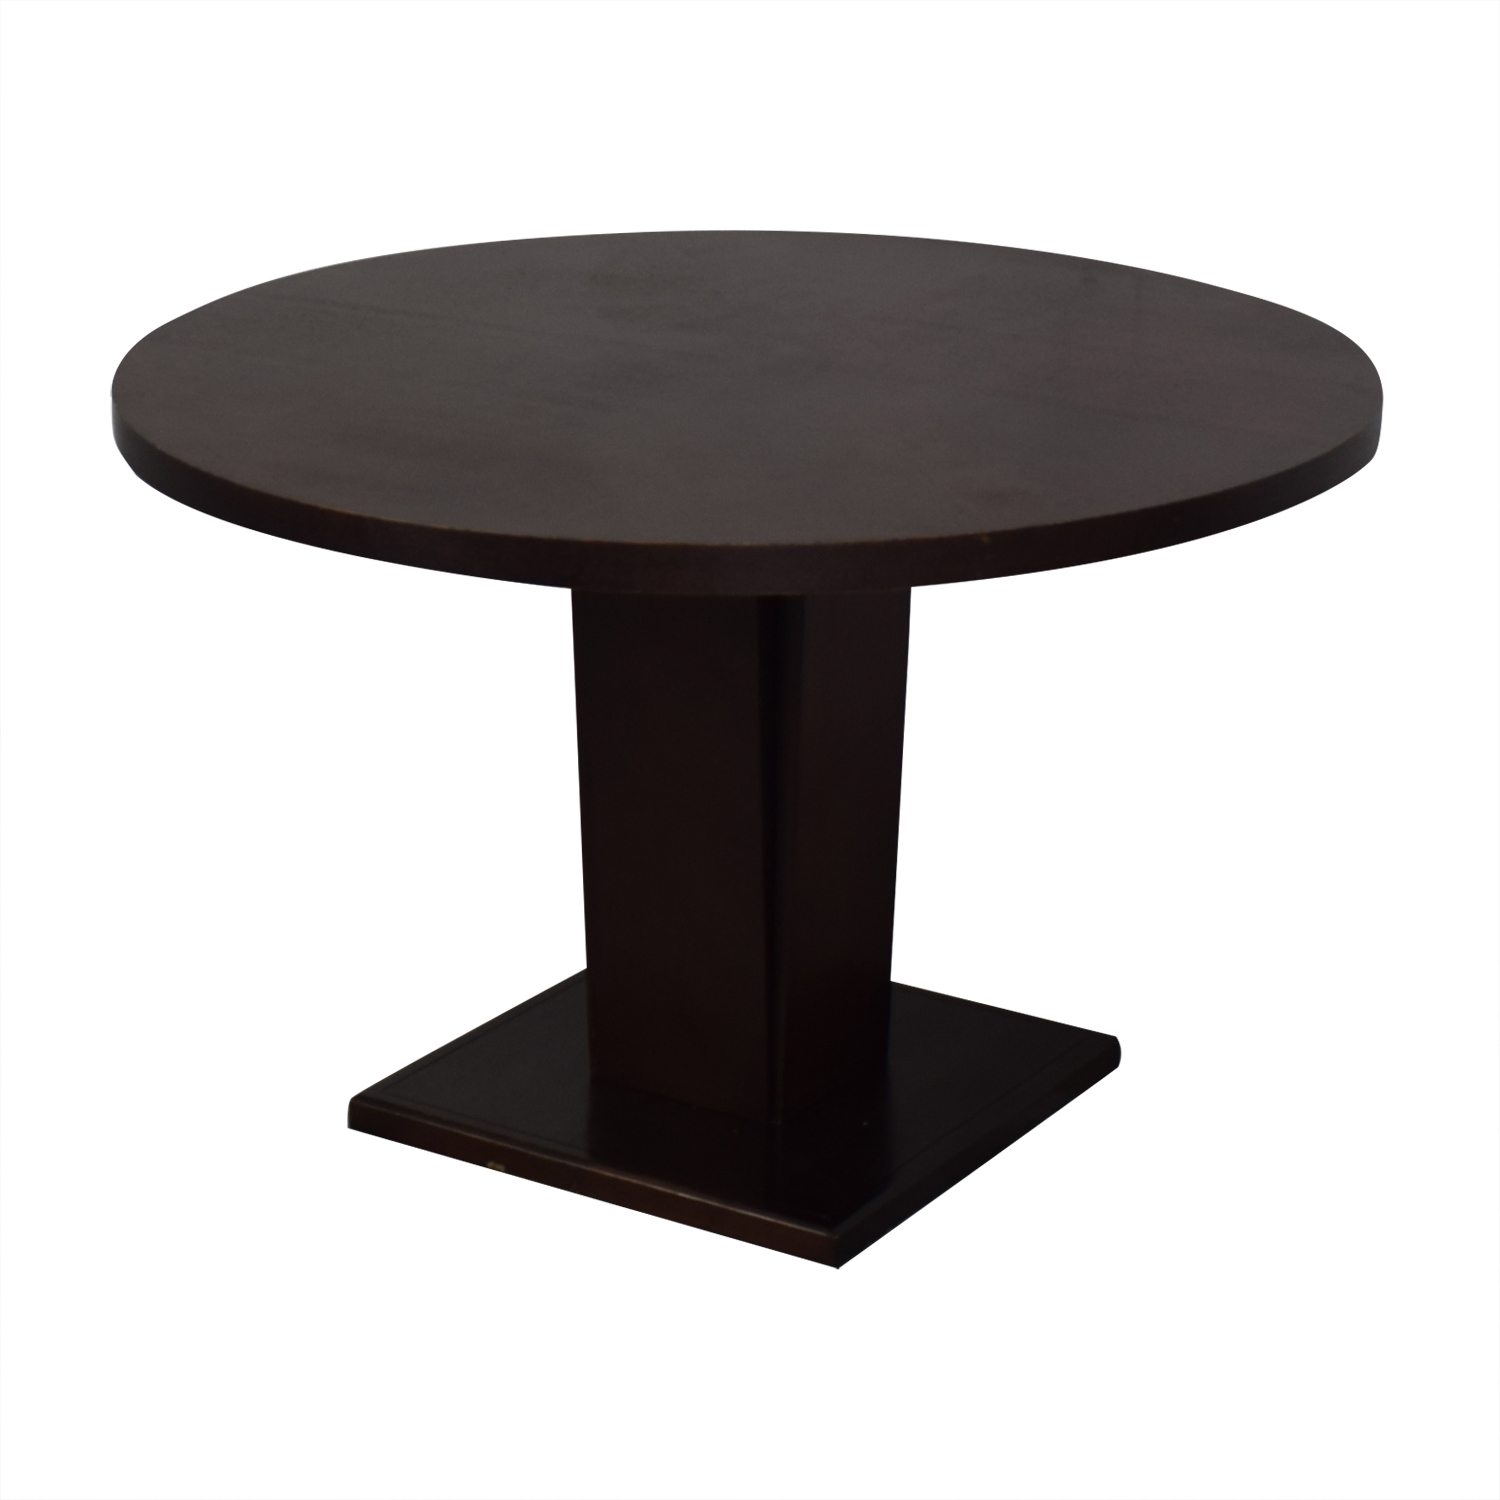 Crate & Barrel Espresso Round Dining Table / Dinner Tables